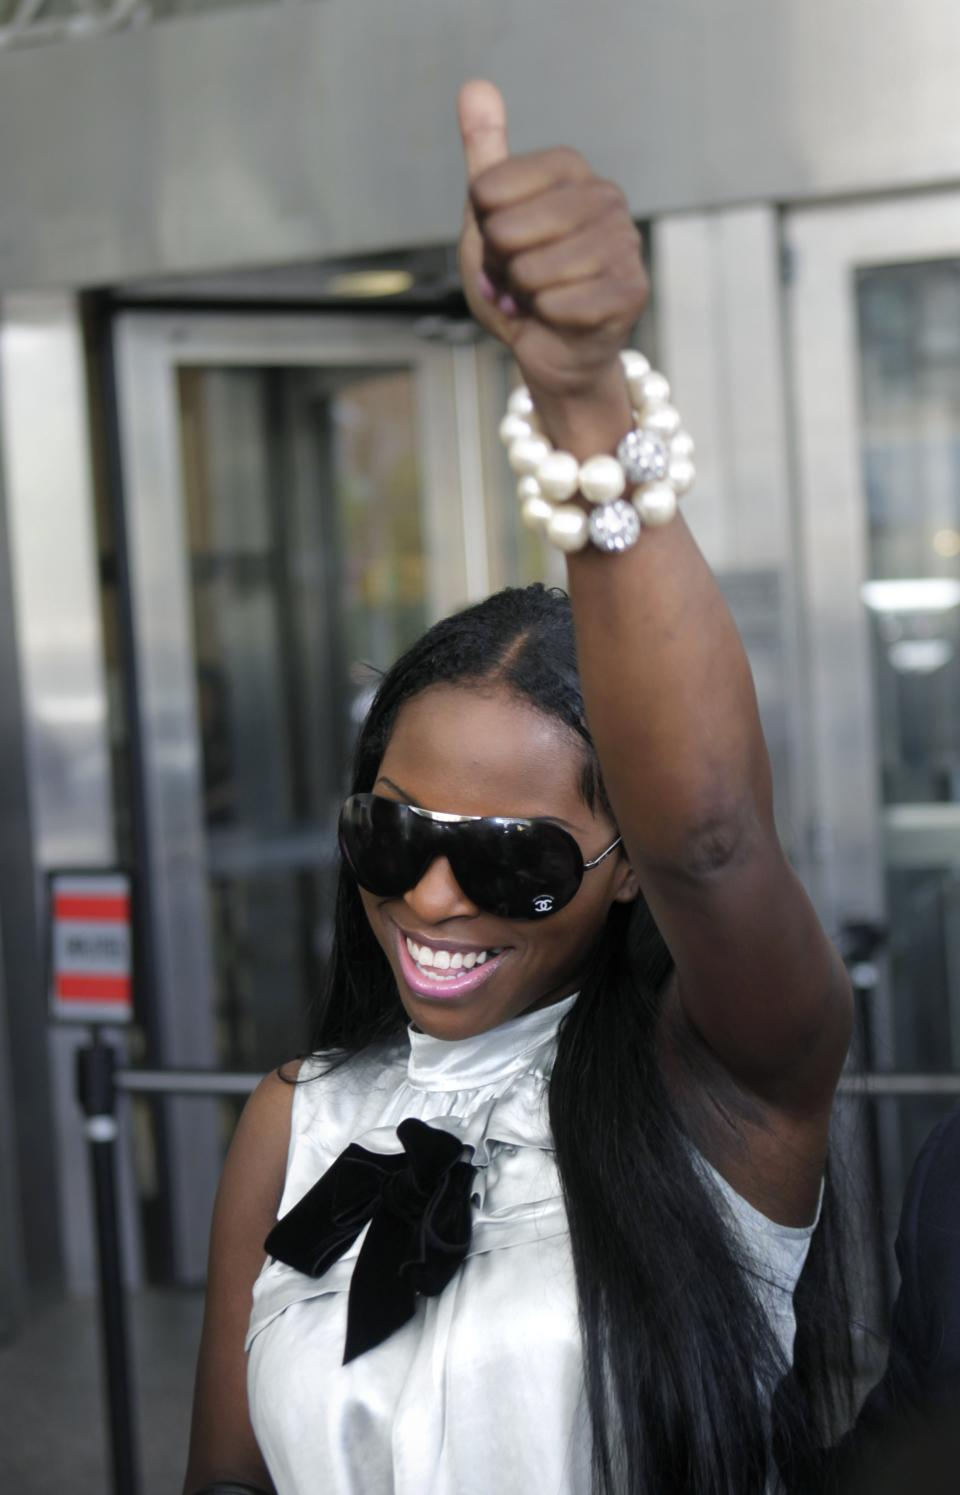 Inga Marchand, also known as Foxy Brown, gives a thumbs-up after leaving court in New York, Tuesday, July 12, 2011. Charges that rapper Foxy Brown violated a court order by mooning her neighbor have been dropped. (AP Photo/Seth Wenig)